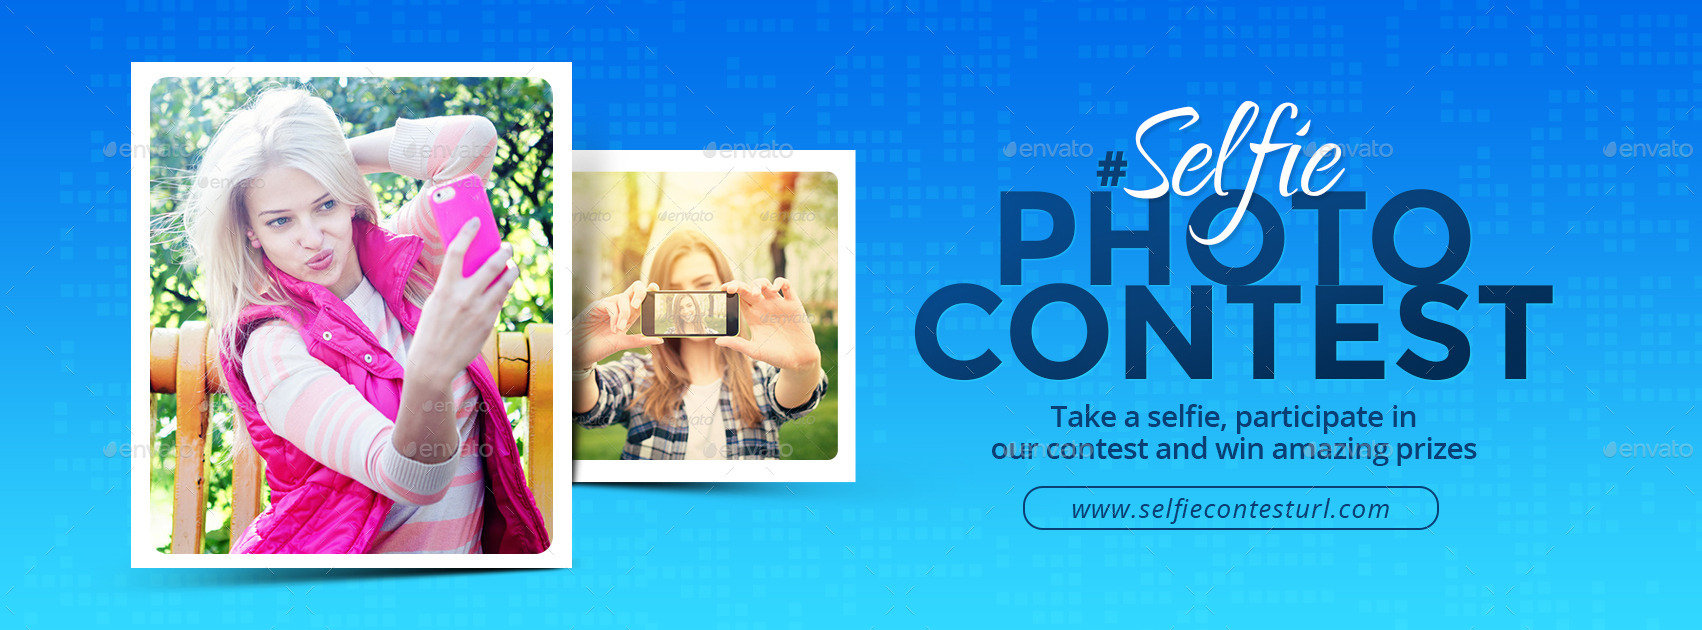 facebook photo contest rules template - photo contest facebook cover by doto graphicriver